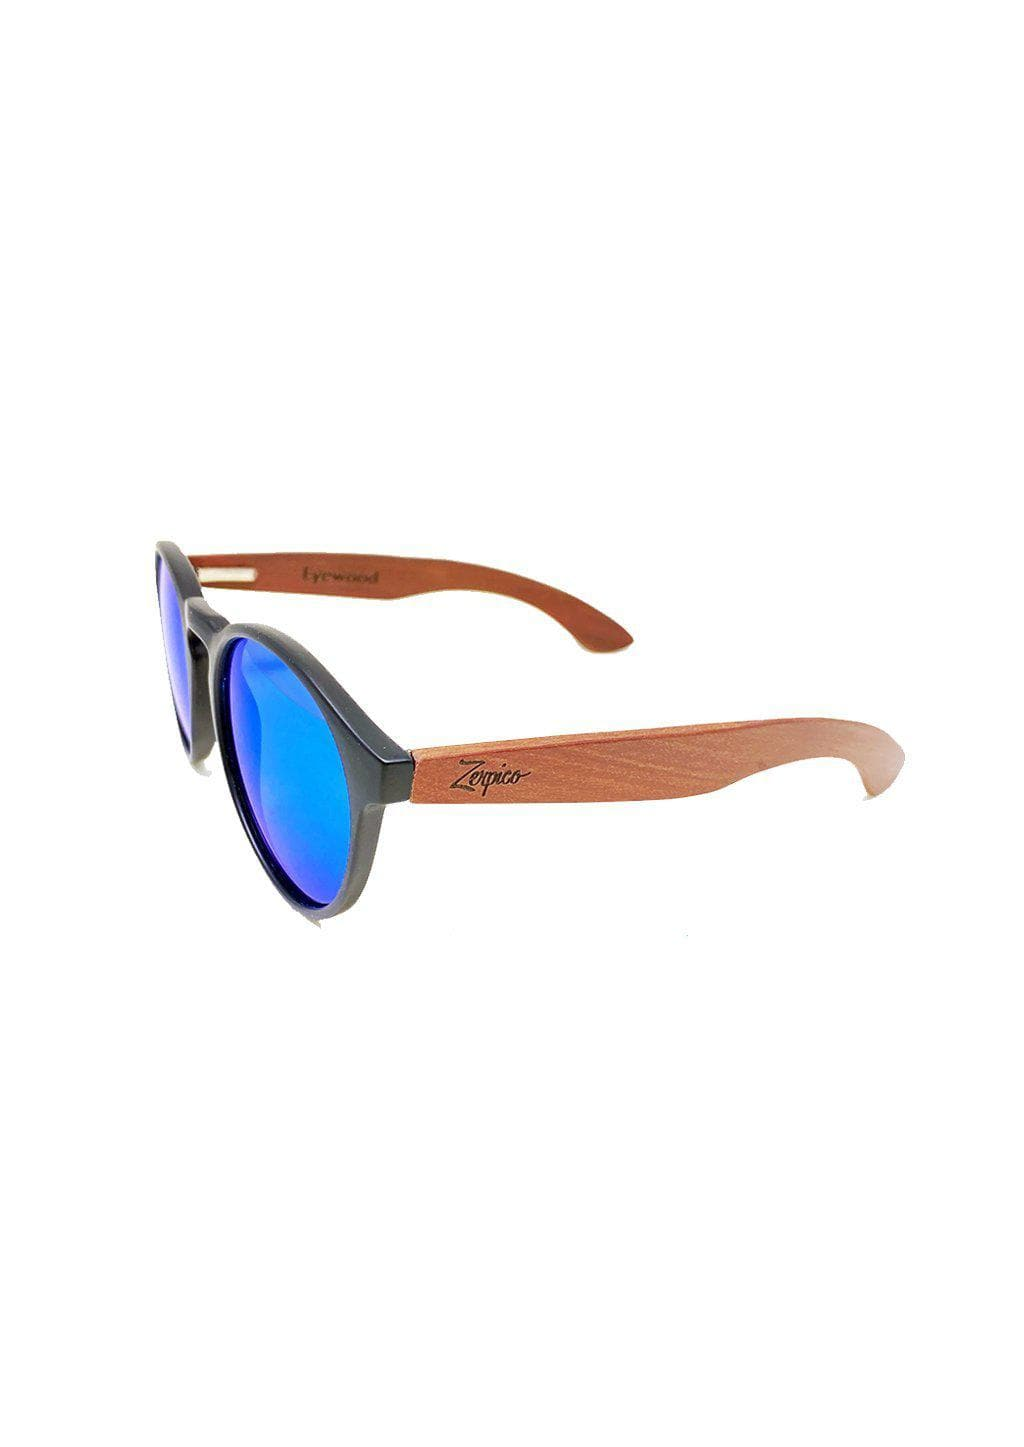 Eyewood Cubs - Lilo - Wooden sunglasses for kids and toddlers. Showing the front.